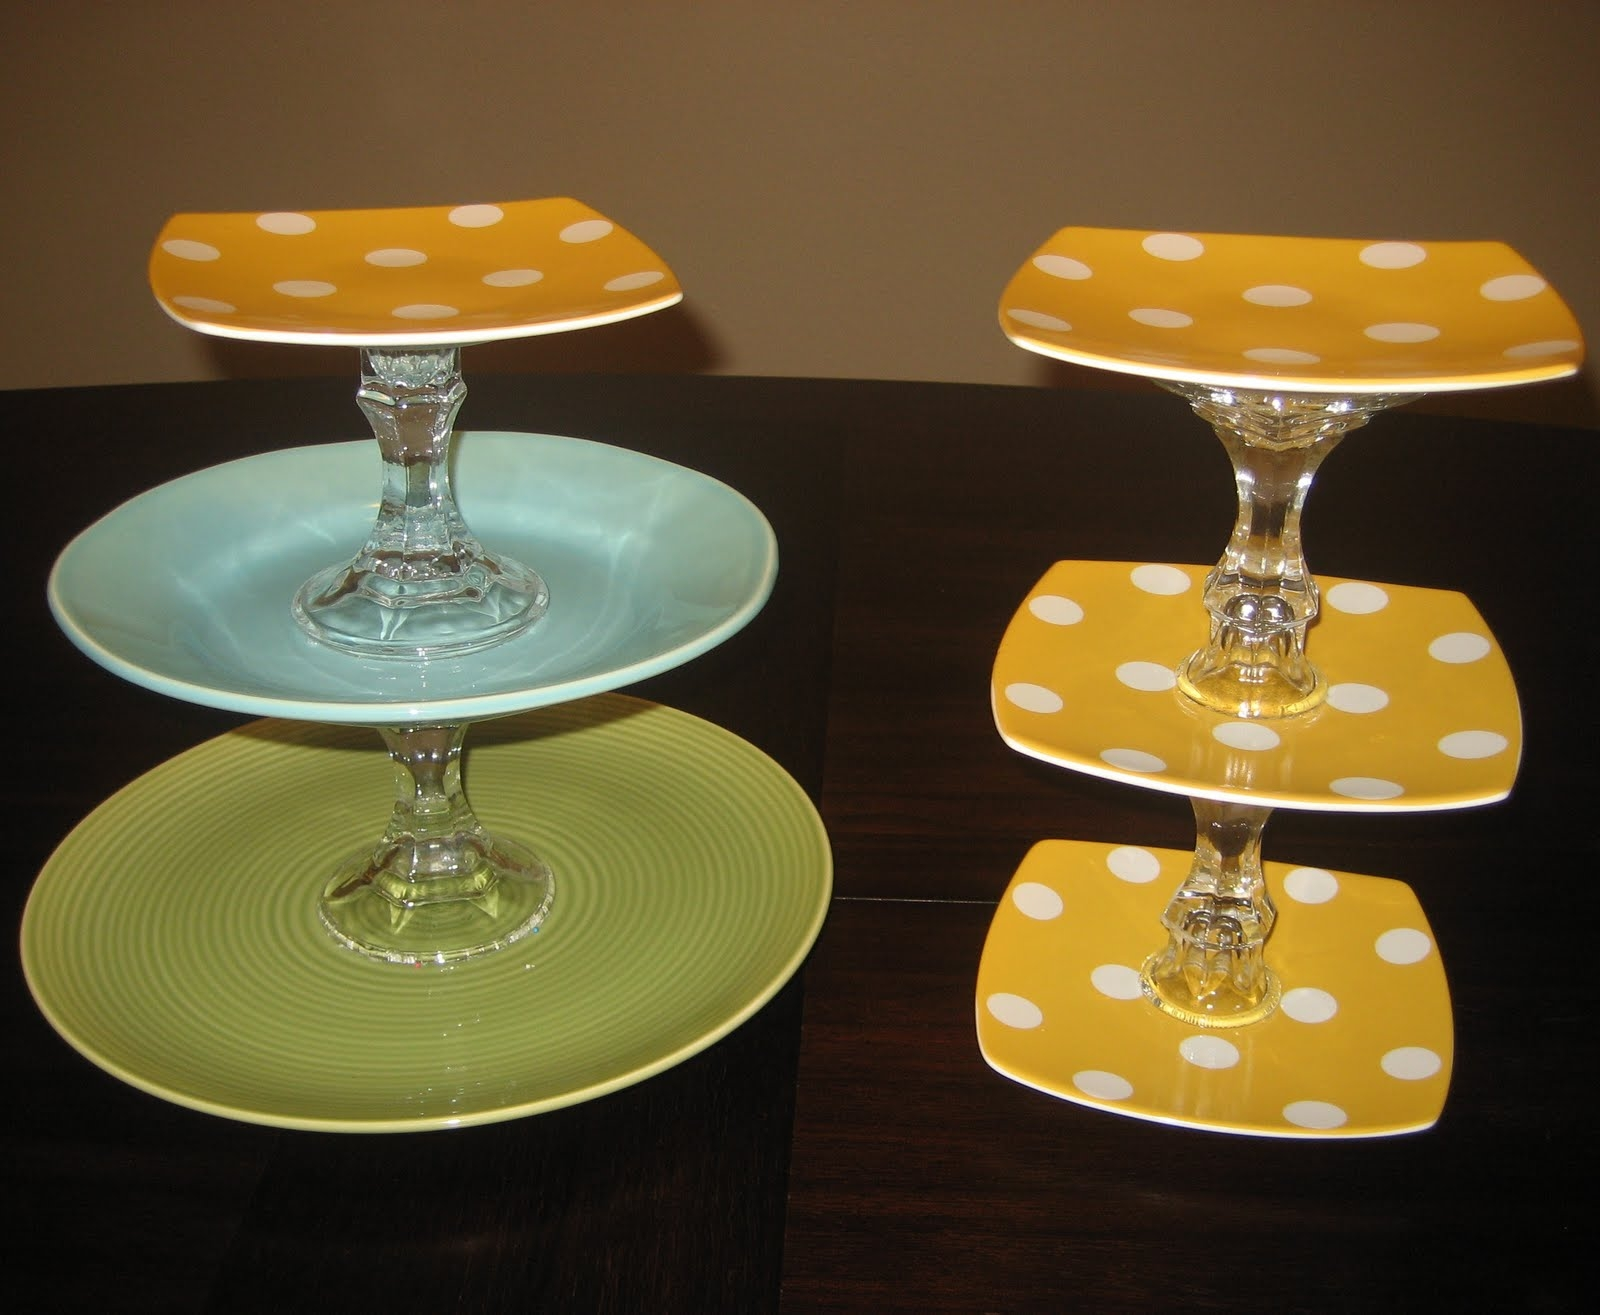 Tiered plate holder 10 : table plate holder - pezcame.com